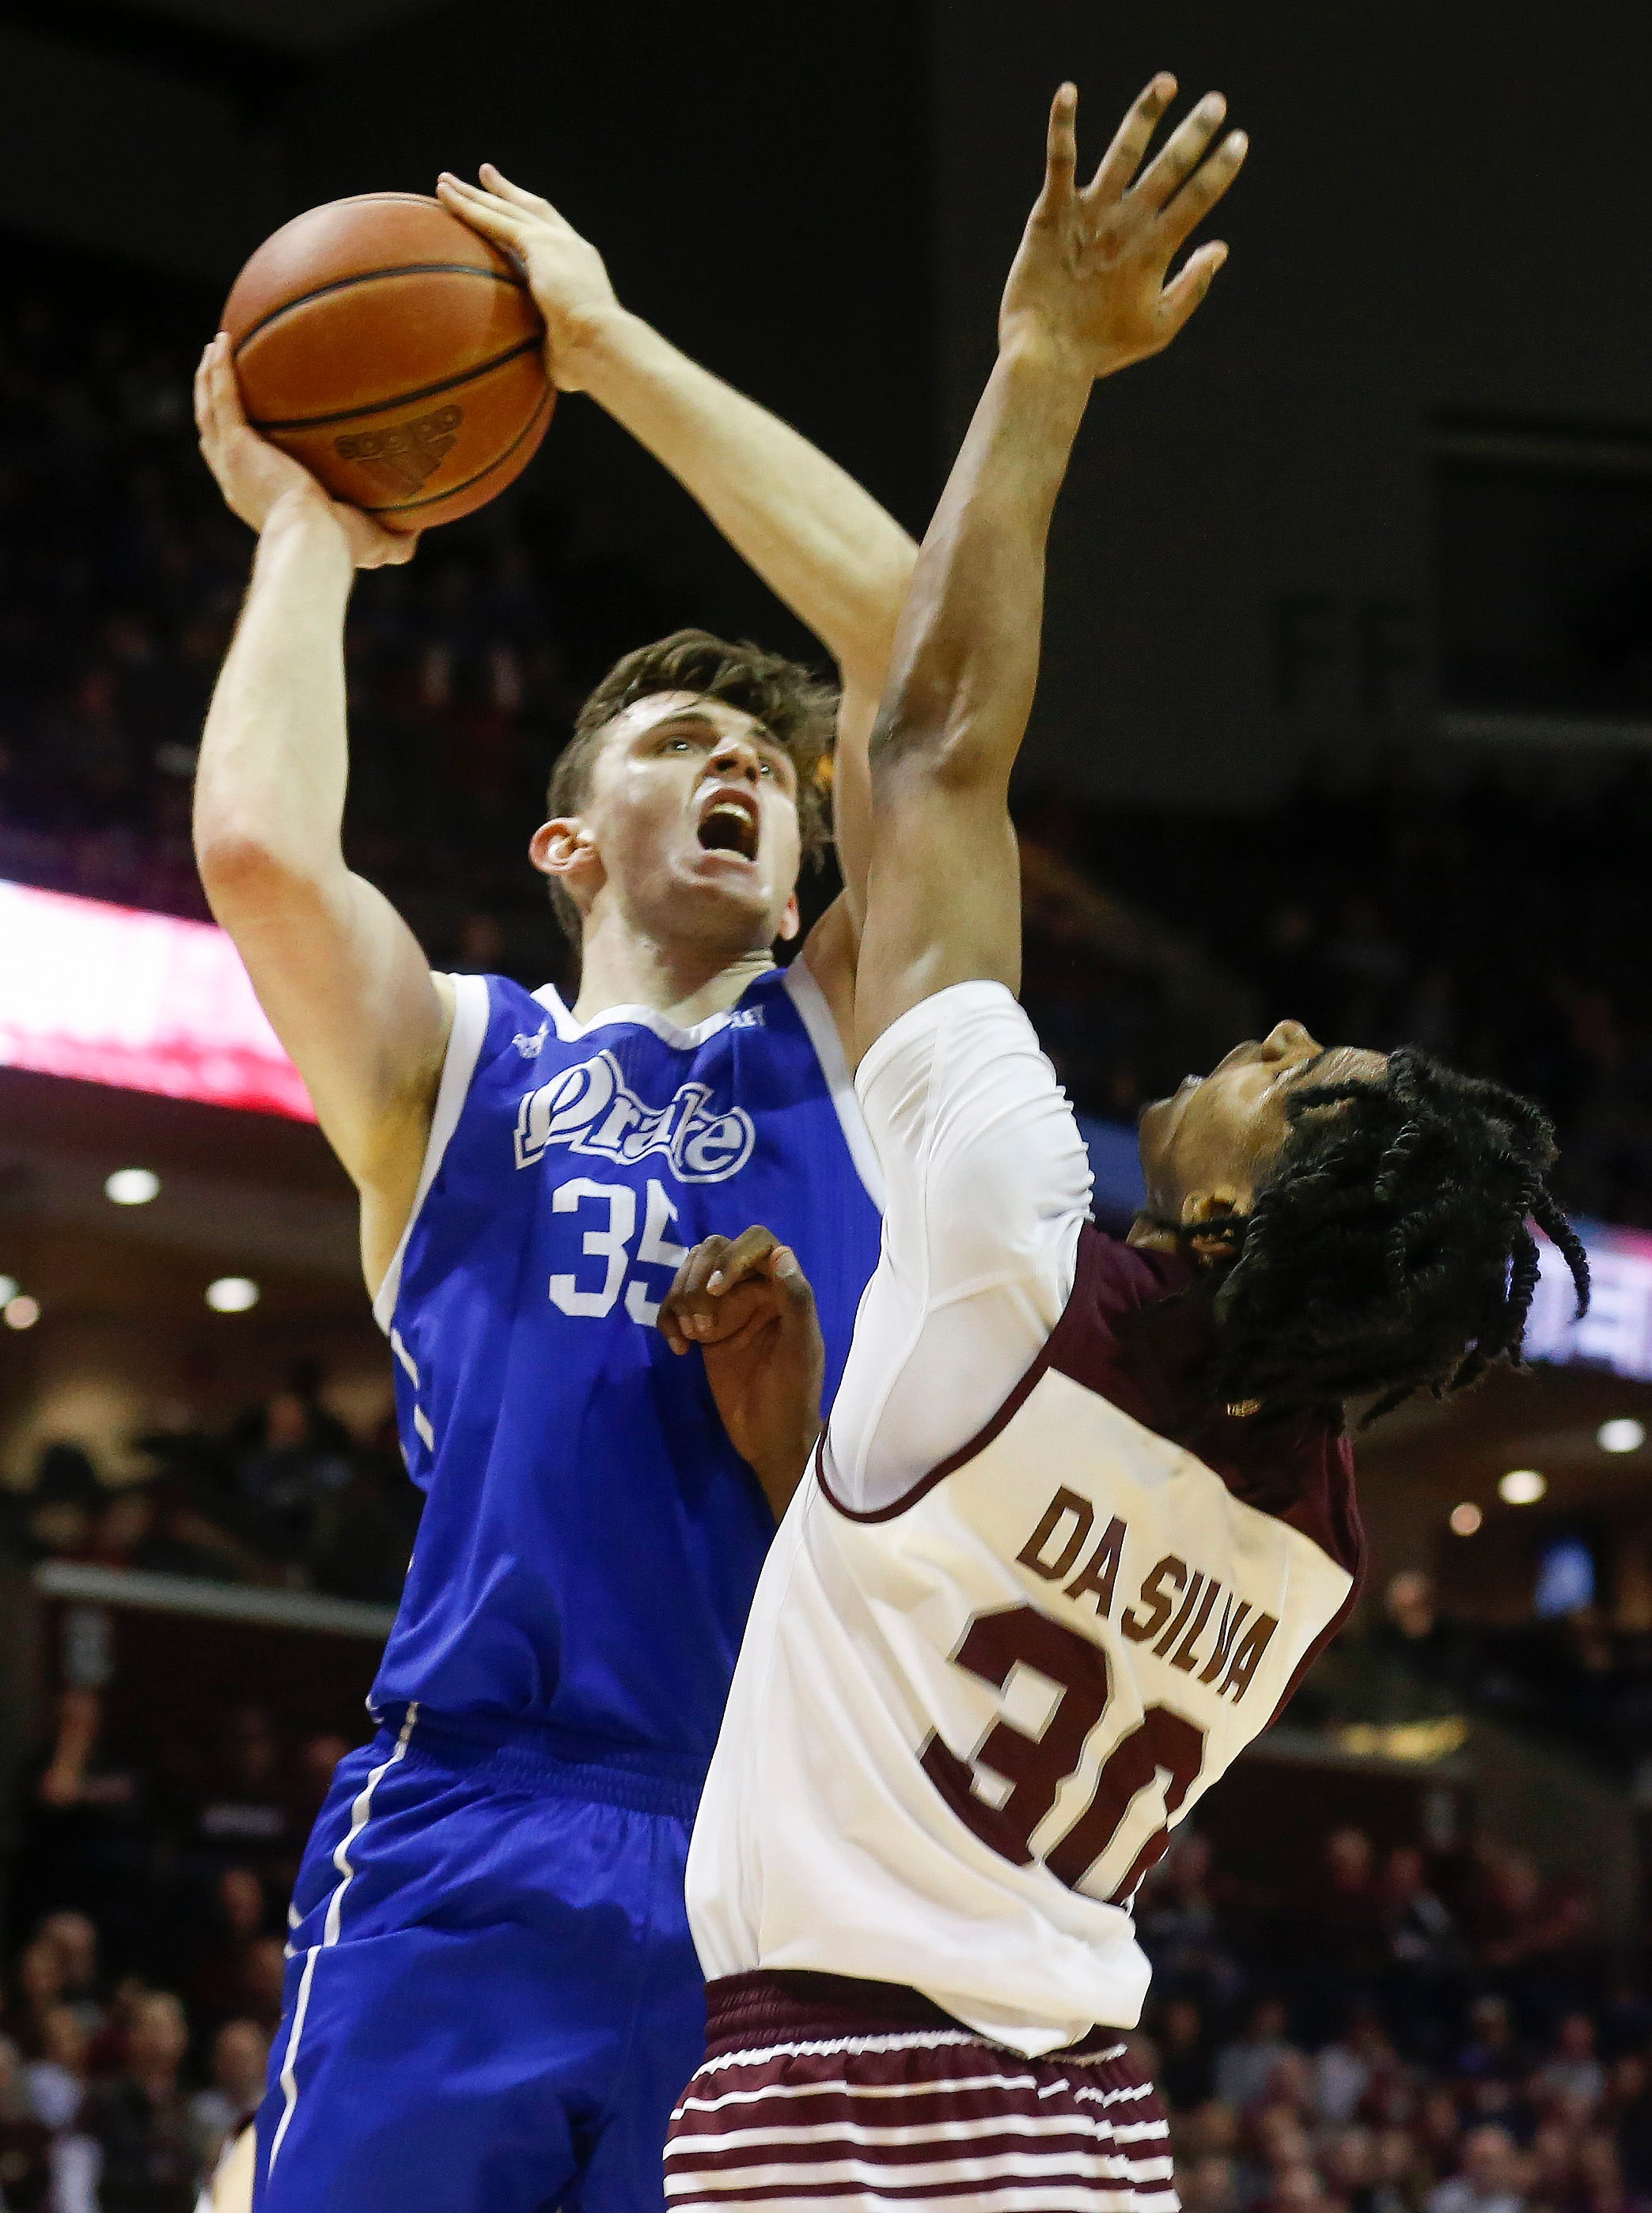 Nick McGlynn, of Drake, puts up a shot during the Bulldogs 73-62 over Missouri State at JQH Arena on Saturday, Mar. 2, 2019.